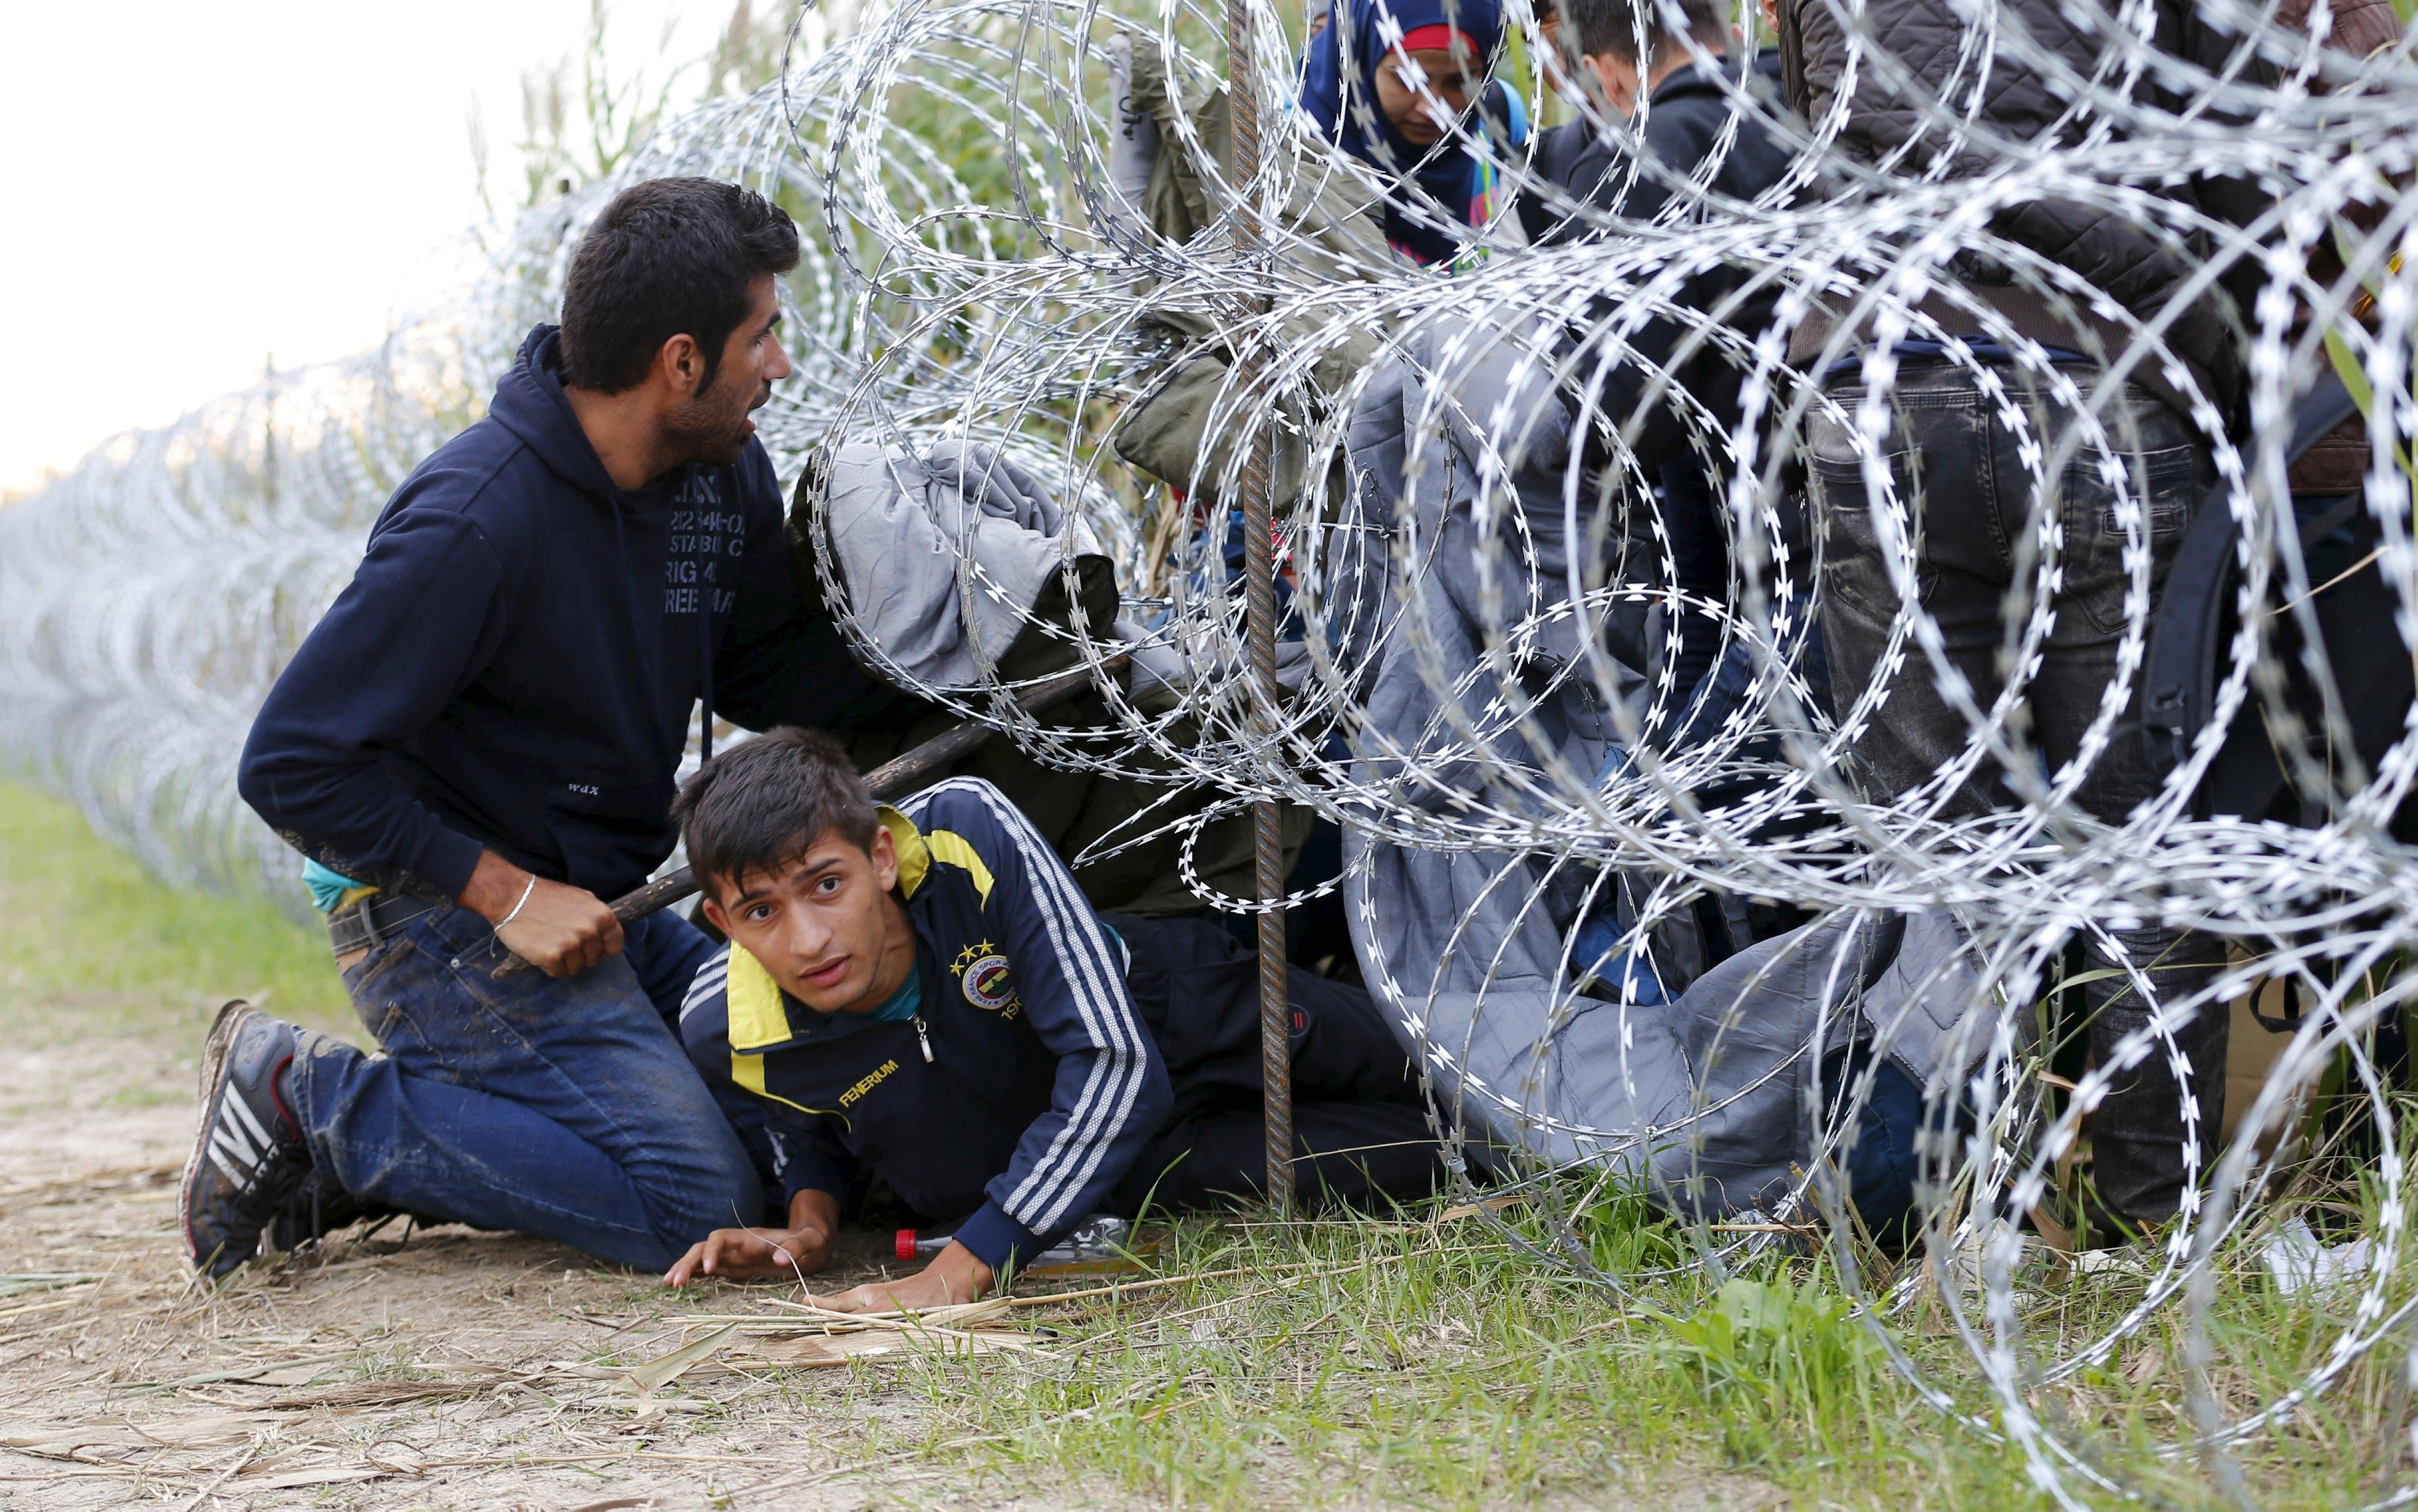 Syrian migrants in Hungary